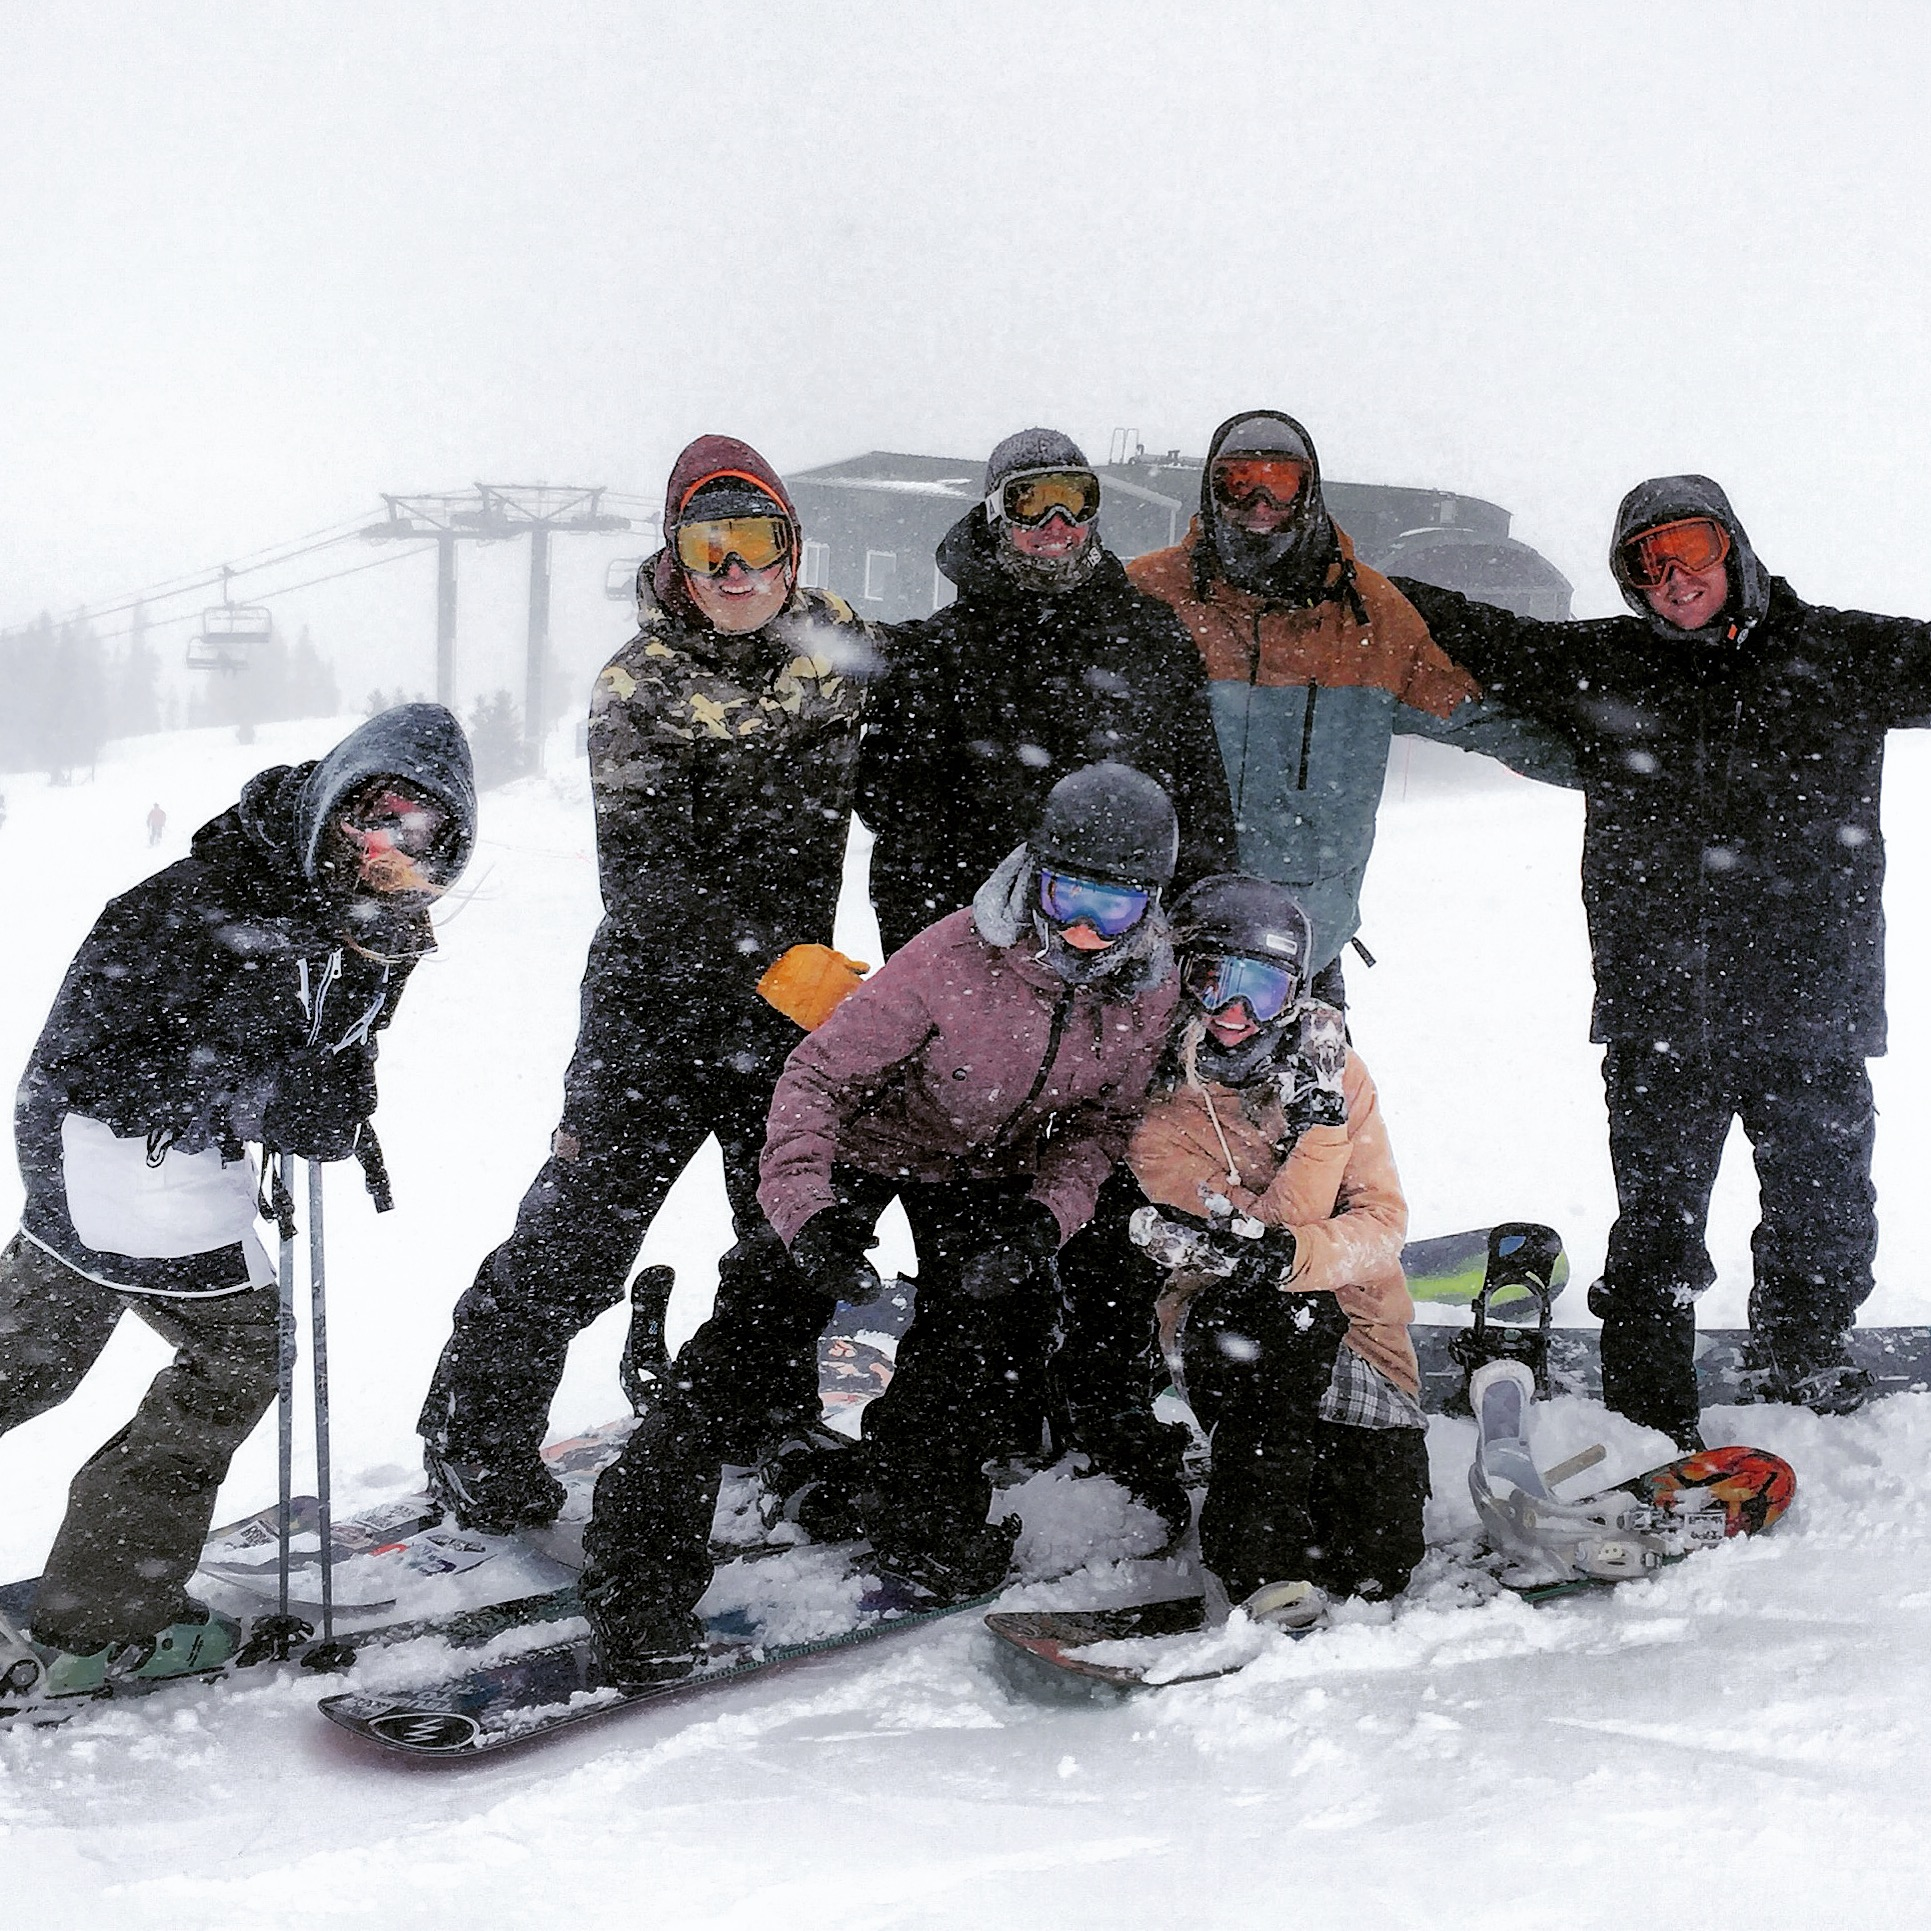 A group of friends enjoy a powder day snowboarding at Copper Mountain